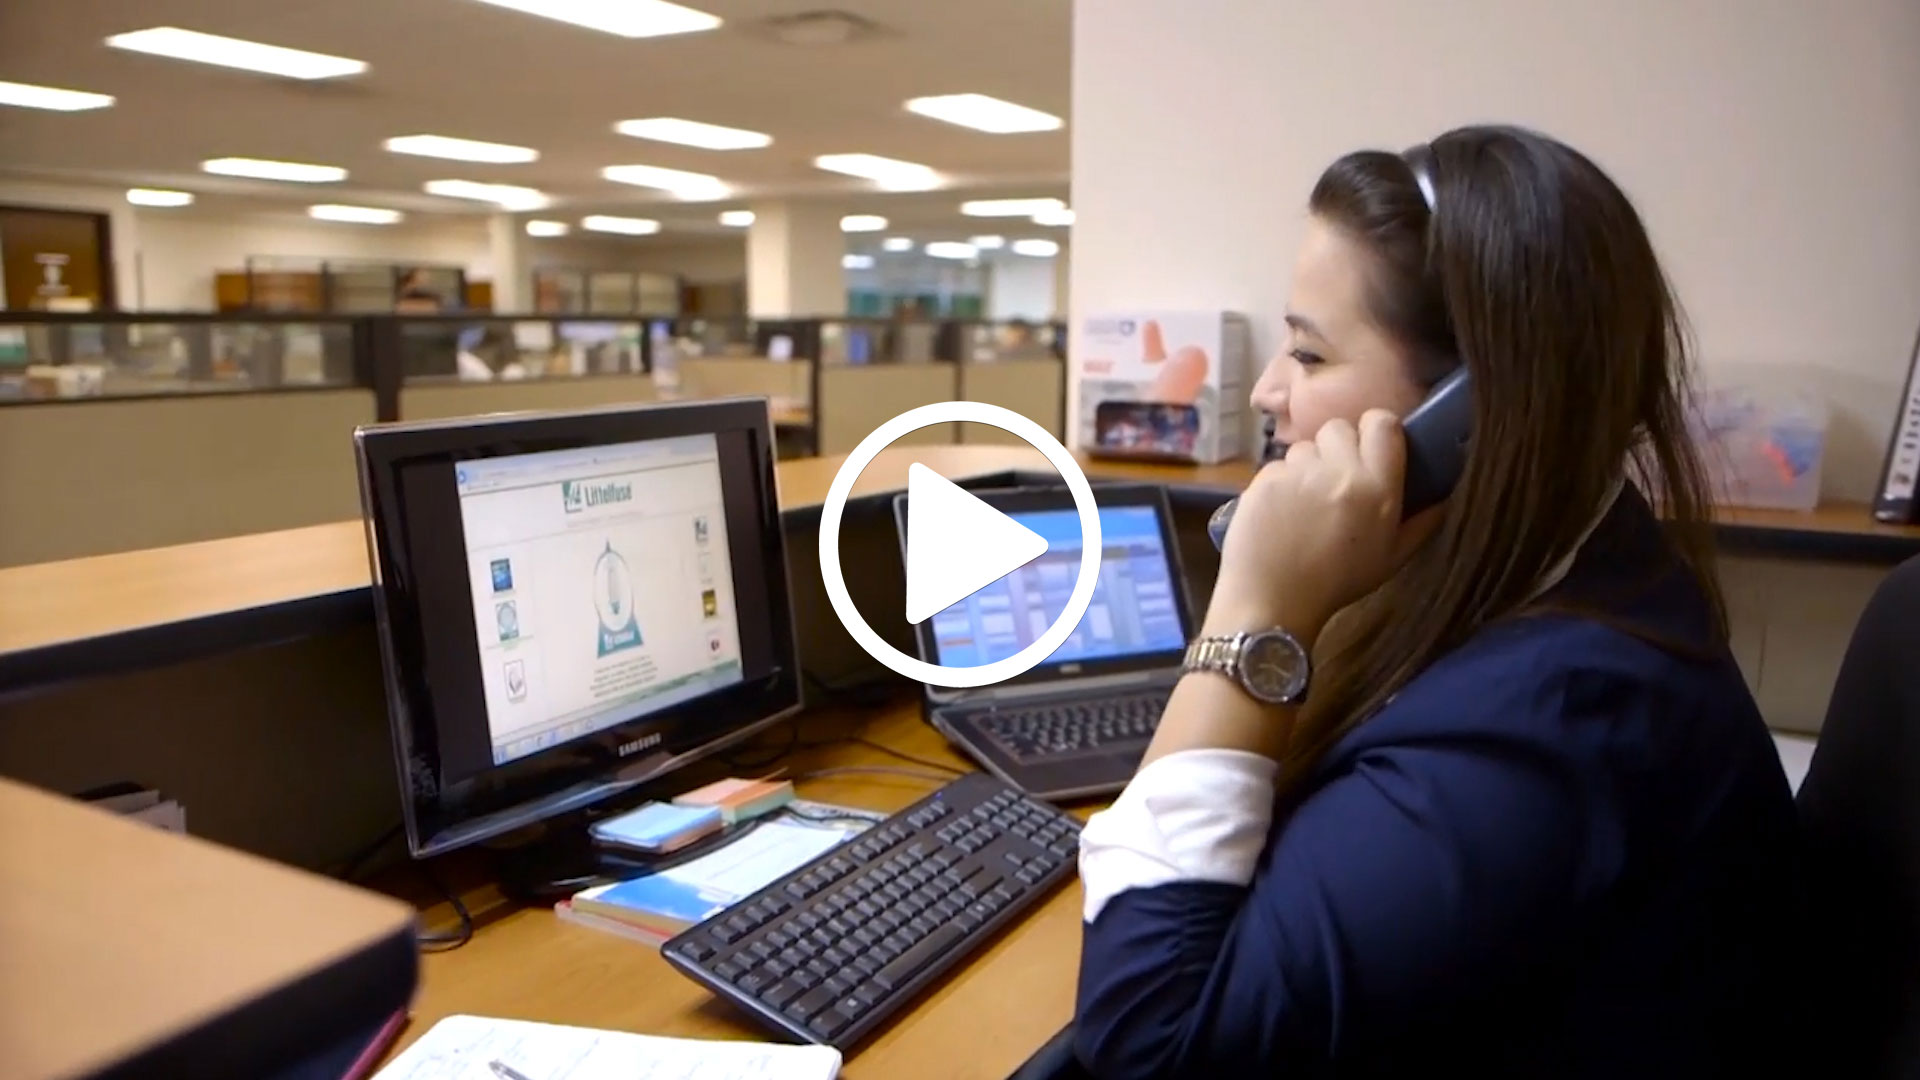 Watch our careers video for available job opening Marketing Communications Specialist in Chicago, IL